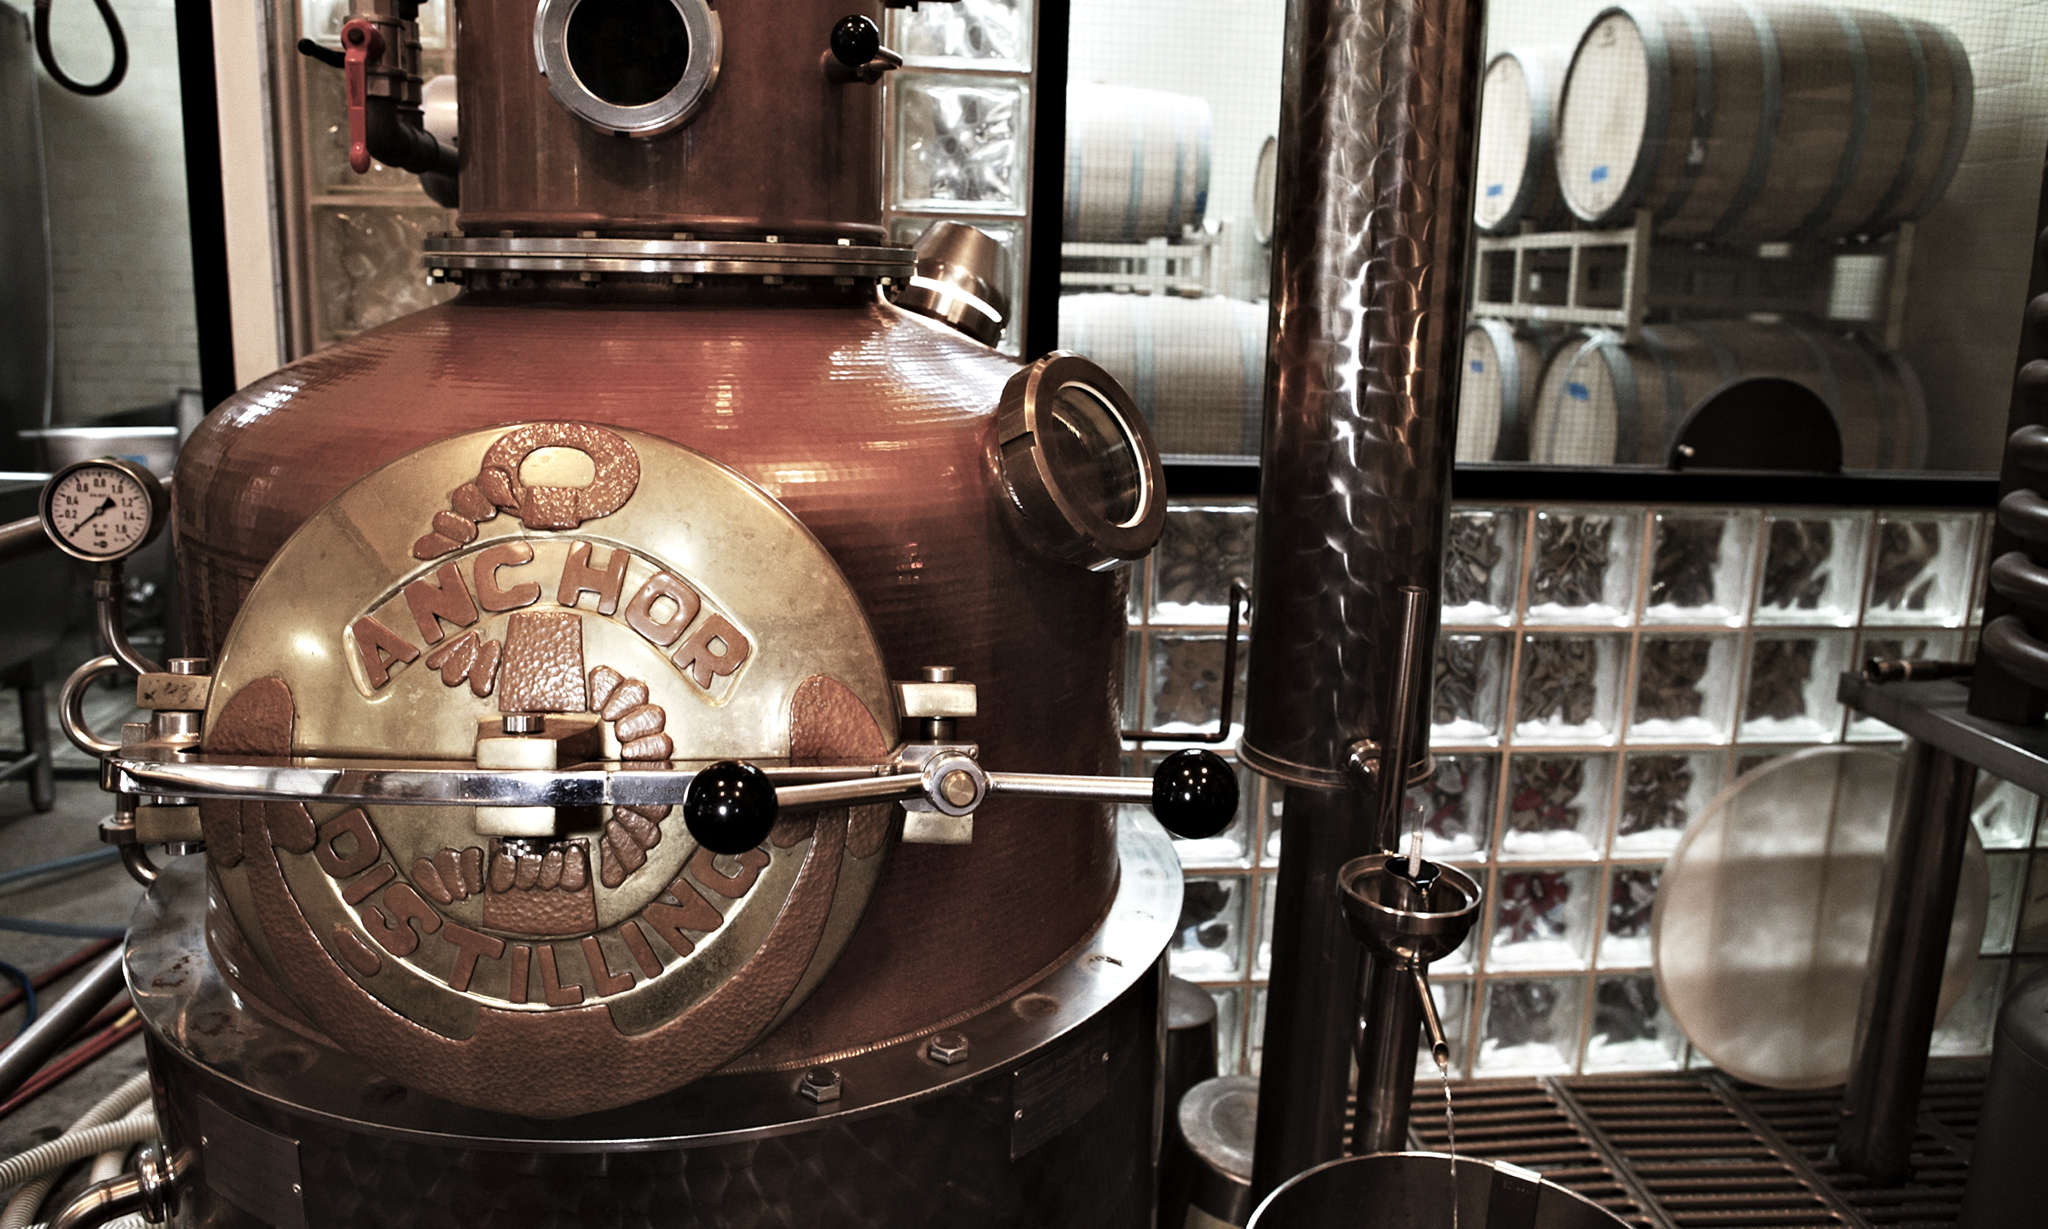 Visit the Anchor Brewing Company